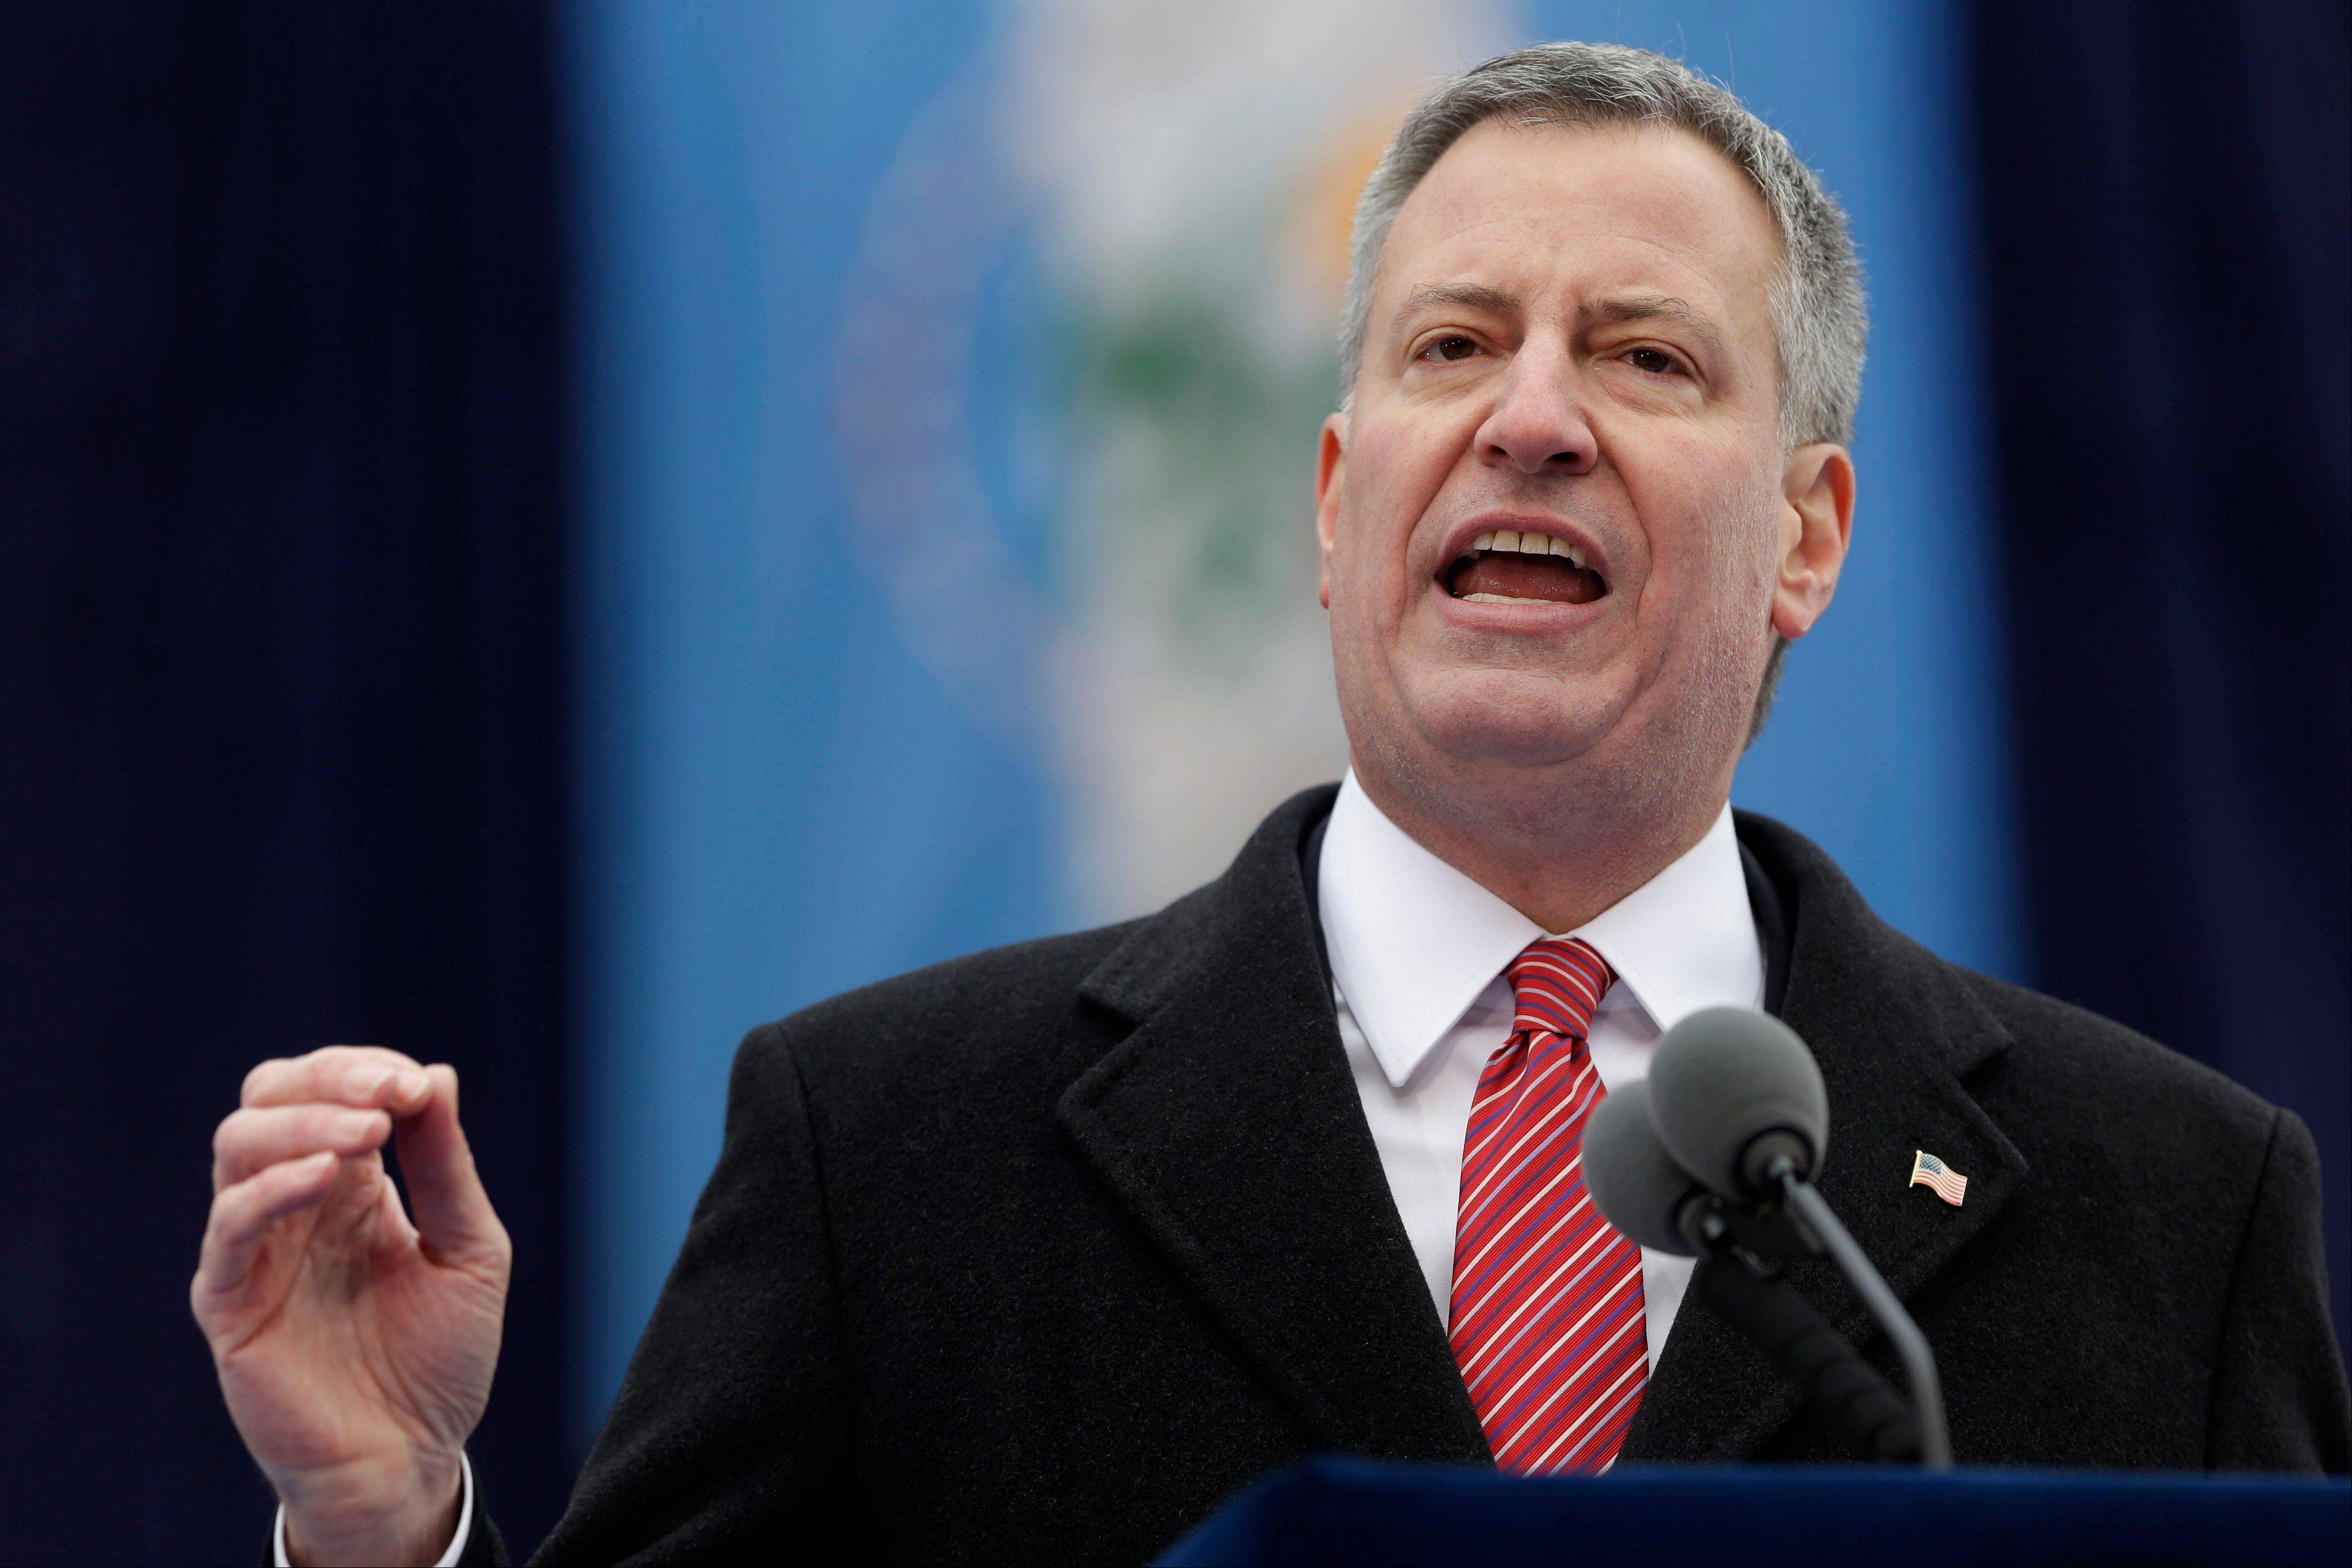 "New York City Mayor Bill de Blasio will not travel across the Hudson River to MetLife Stadium in East Rutherford, N.J., on Sunday for the Super Bowl that will be broadcast to a television audience expected to top 100 million people. De Blasio said Thursday, Jan. 30, that he has ""decided to watch the game on TV, just like the vast majority of New Yorkers."""